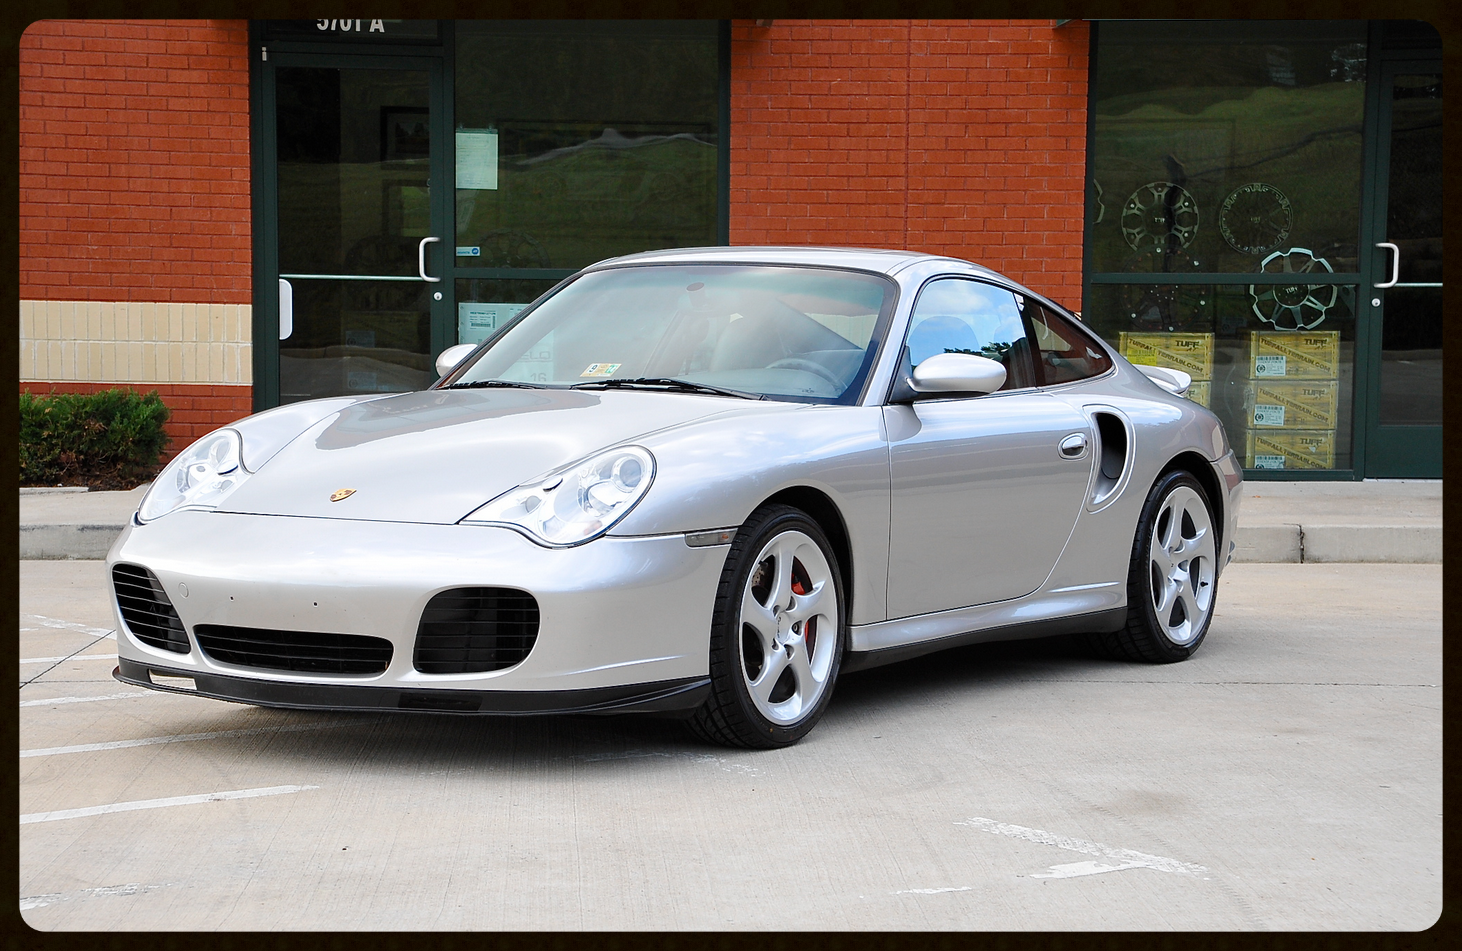 911 Turbo...Polar Silver...Sport Seats...Very Clean...Click to View More Photos